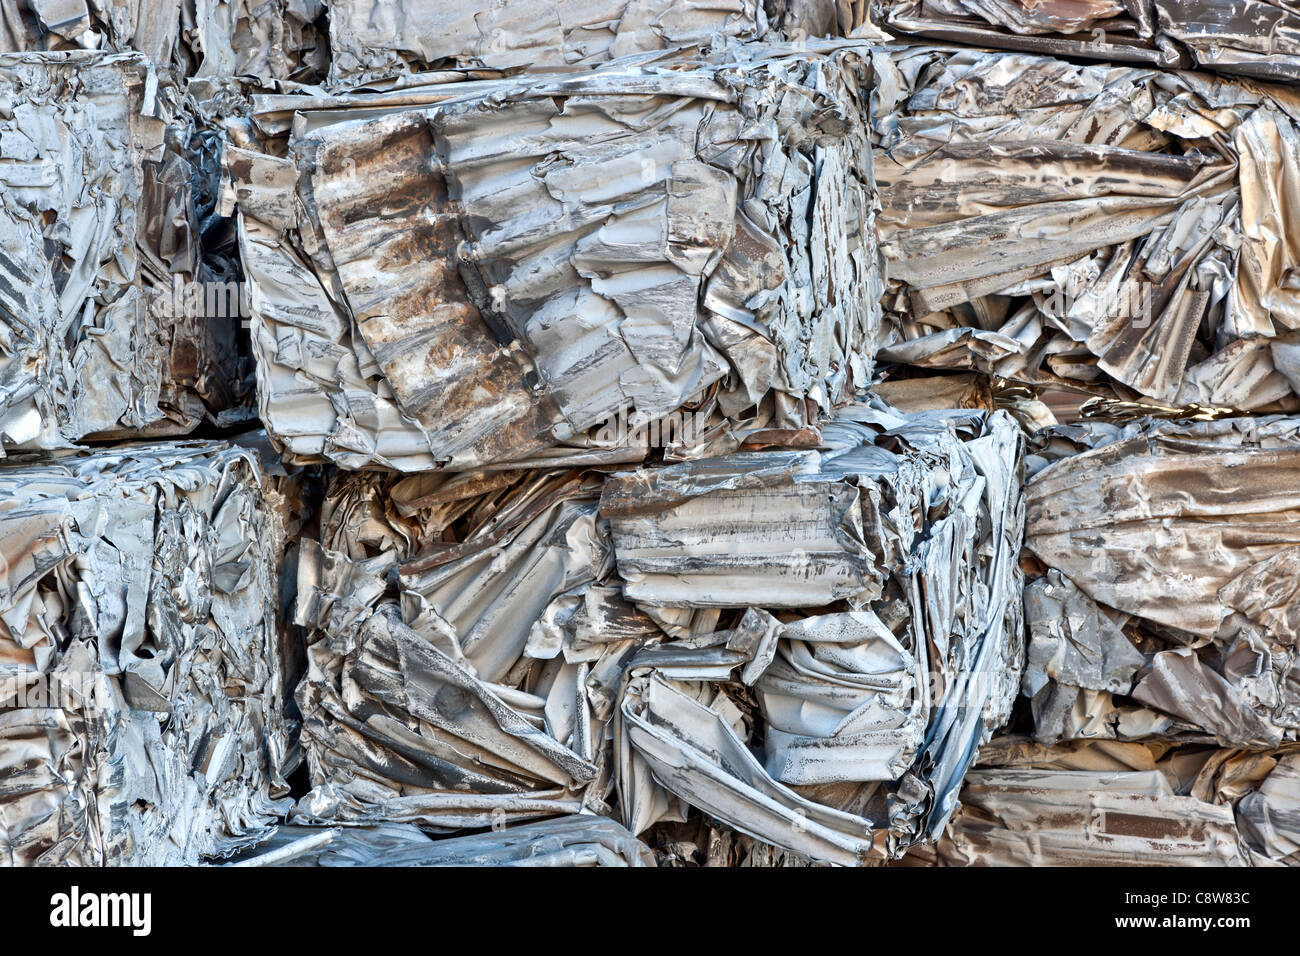 Recycling, compacted aluminum sheeting - Stock Image